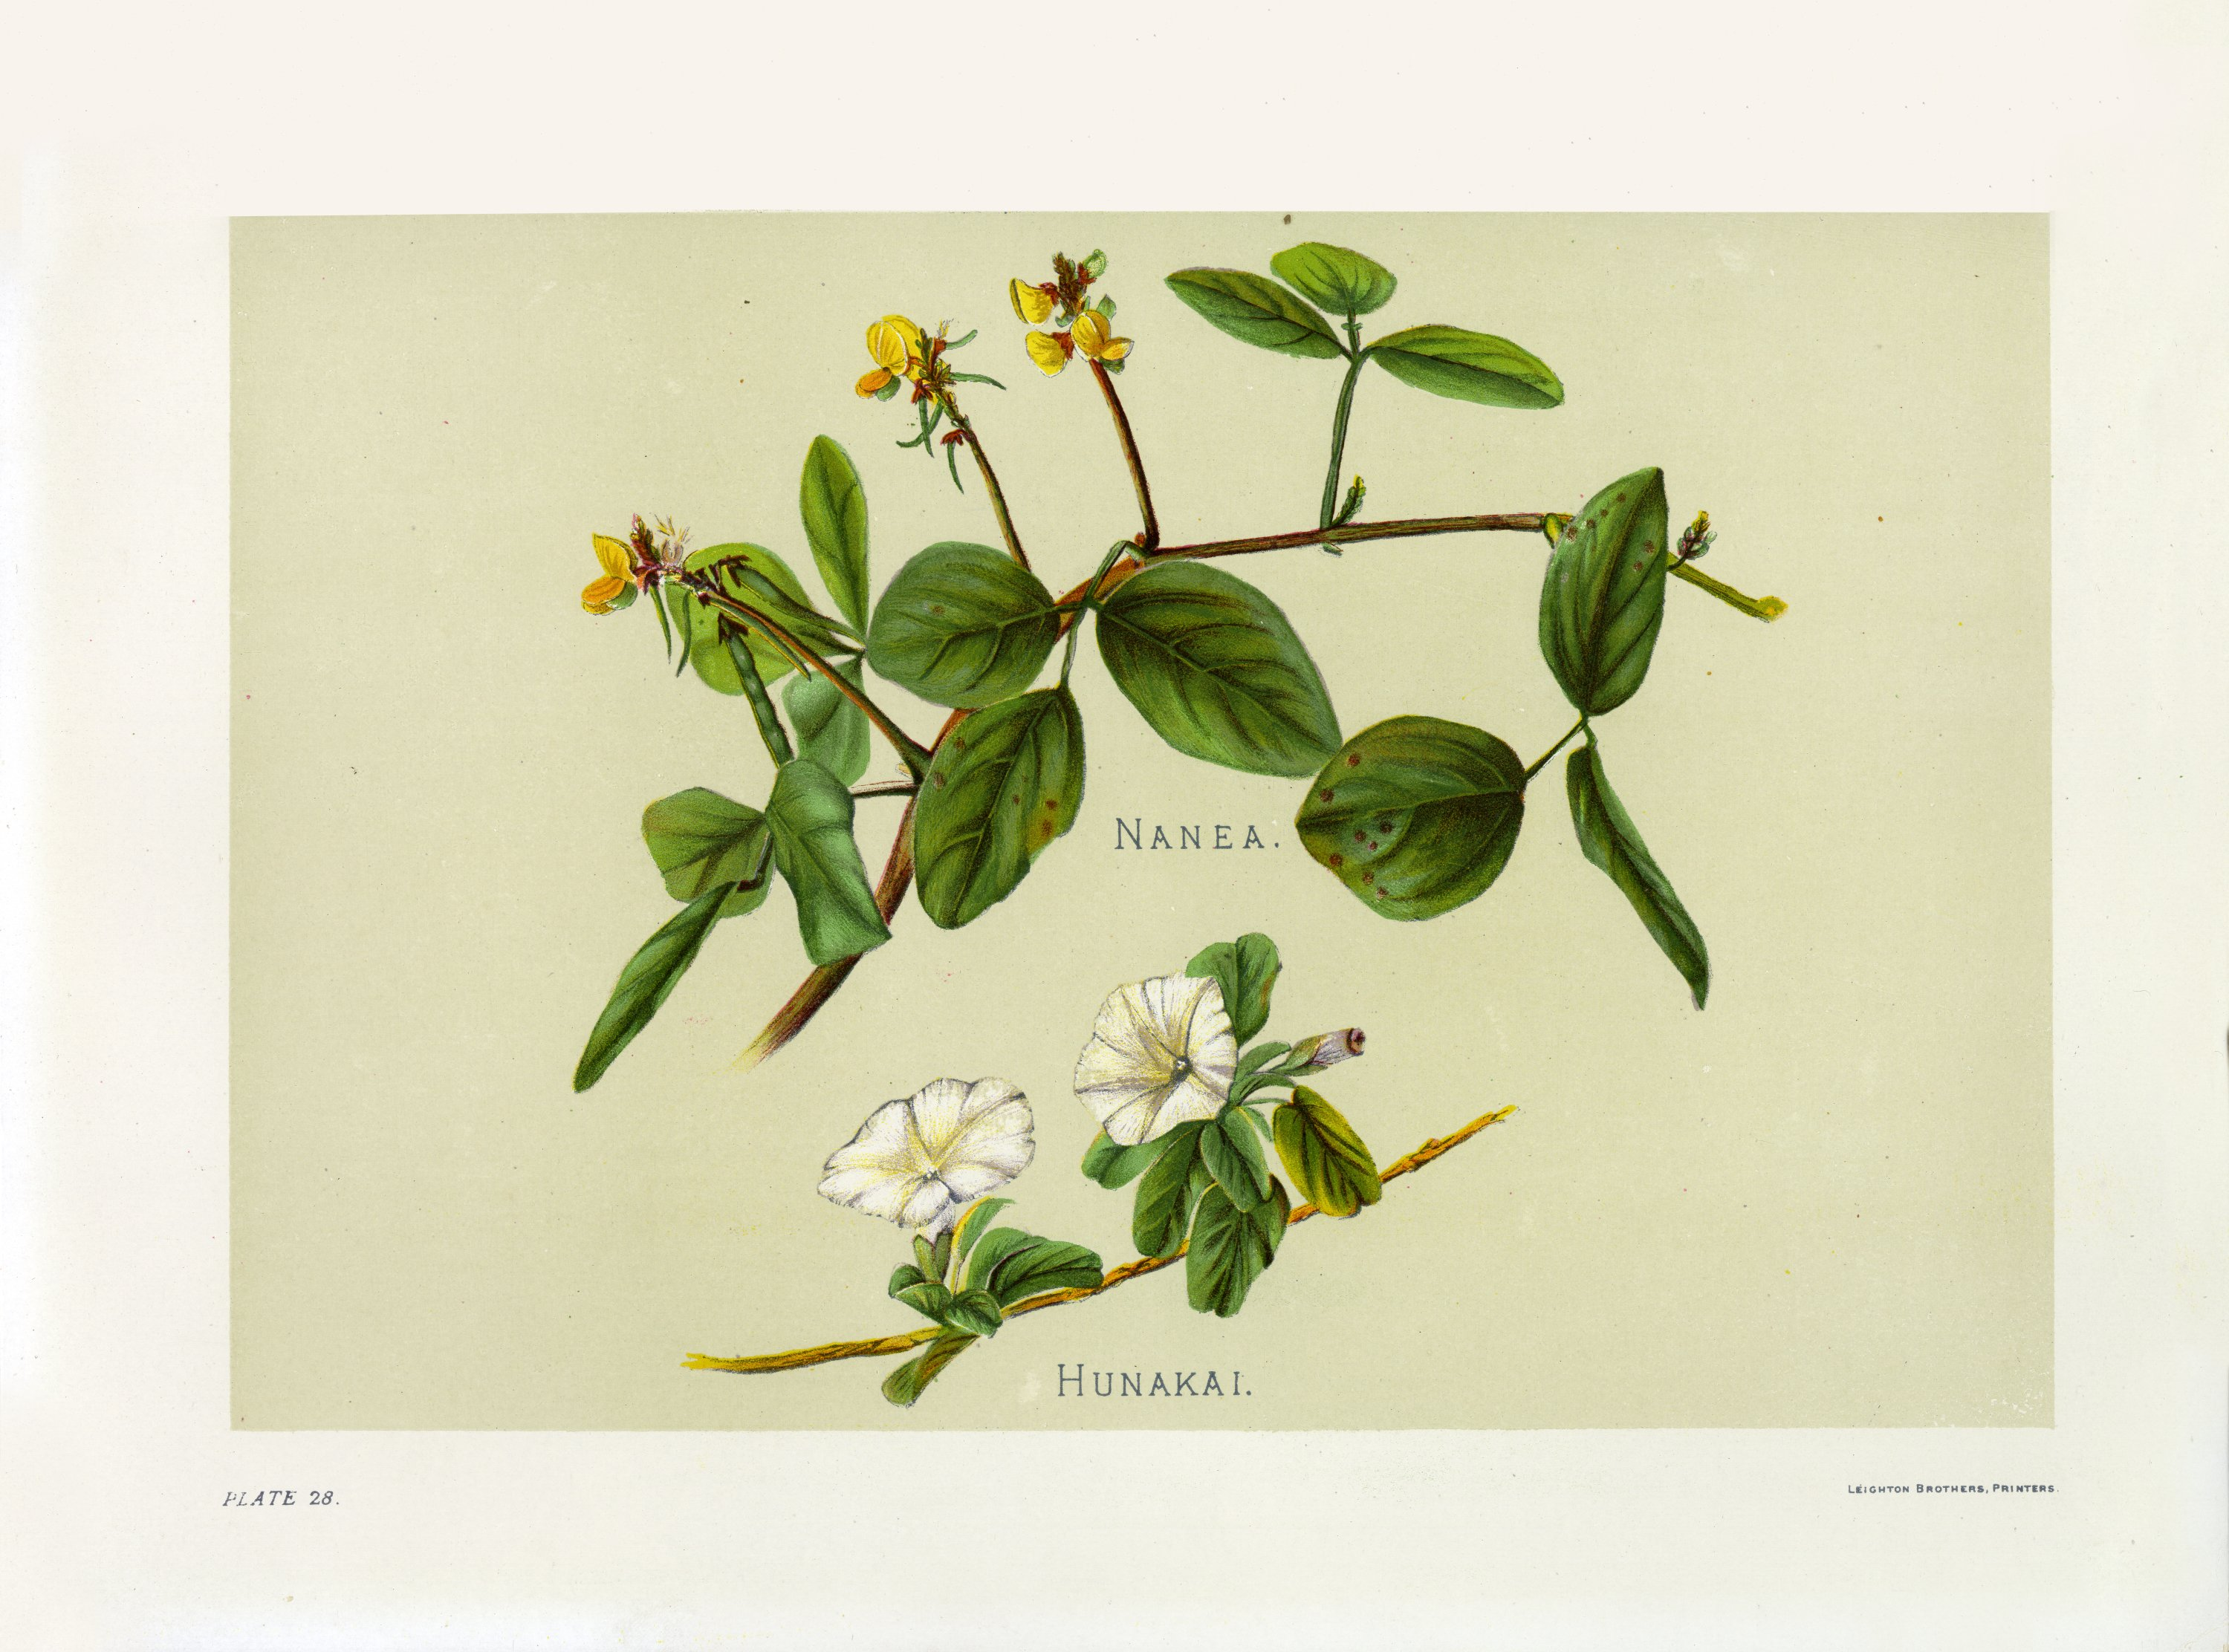 Indigenous Flowers of the Hawaiian Islands, Plate 28.jpg English: Indigenous Flowers of the Hawaiian Islands by Mrs. Frances Sinclair, Plate